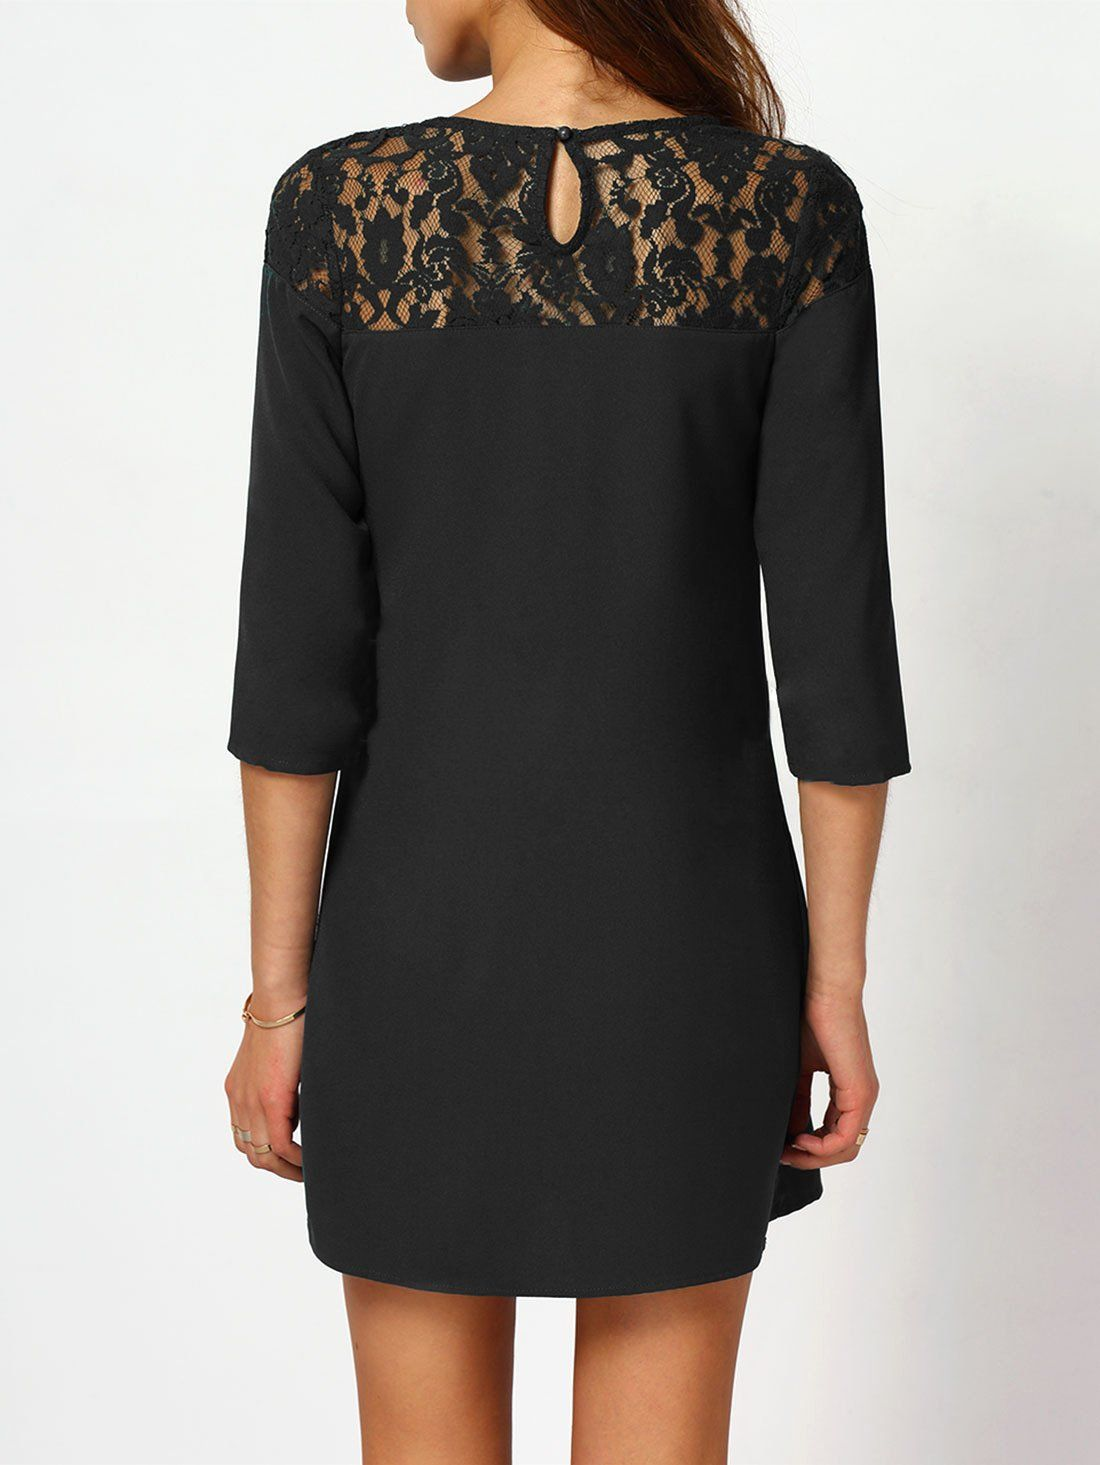 Shein Womens Hollow Sheer Lace 3 4 Sleeve Shift Dress Medium Black To View Further For This Item Mini Dress With Sleeves Women Dress Collection Shift Dress [ 1465 x 1100 Pixel ]